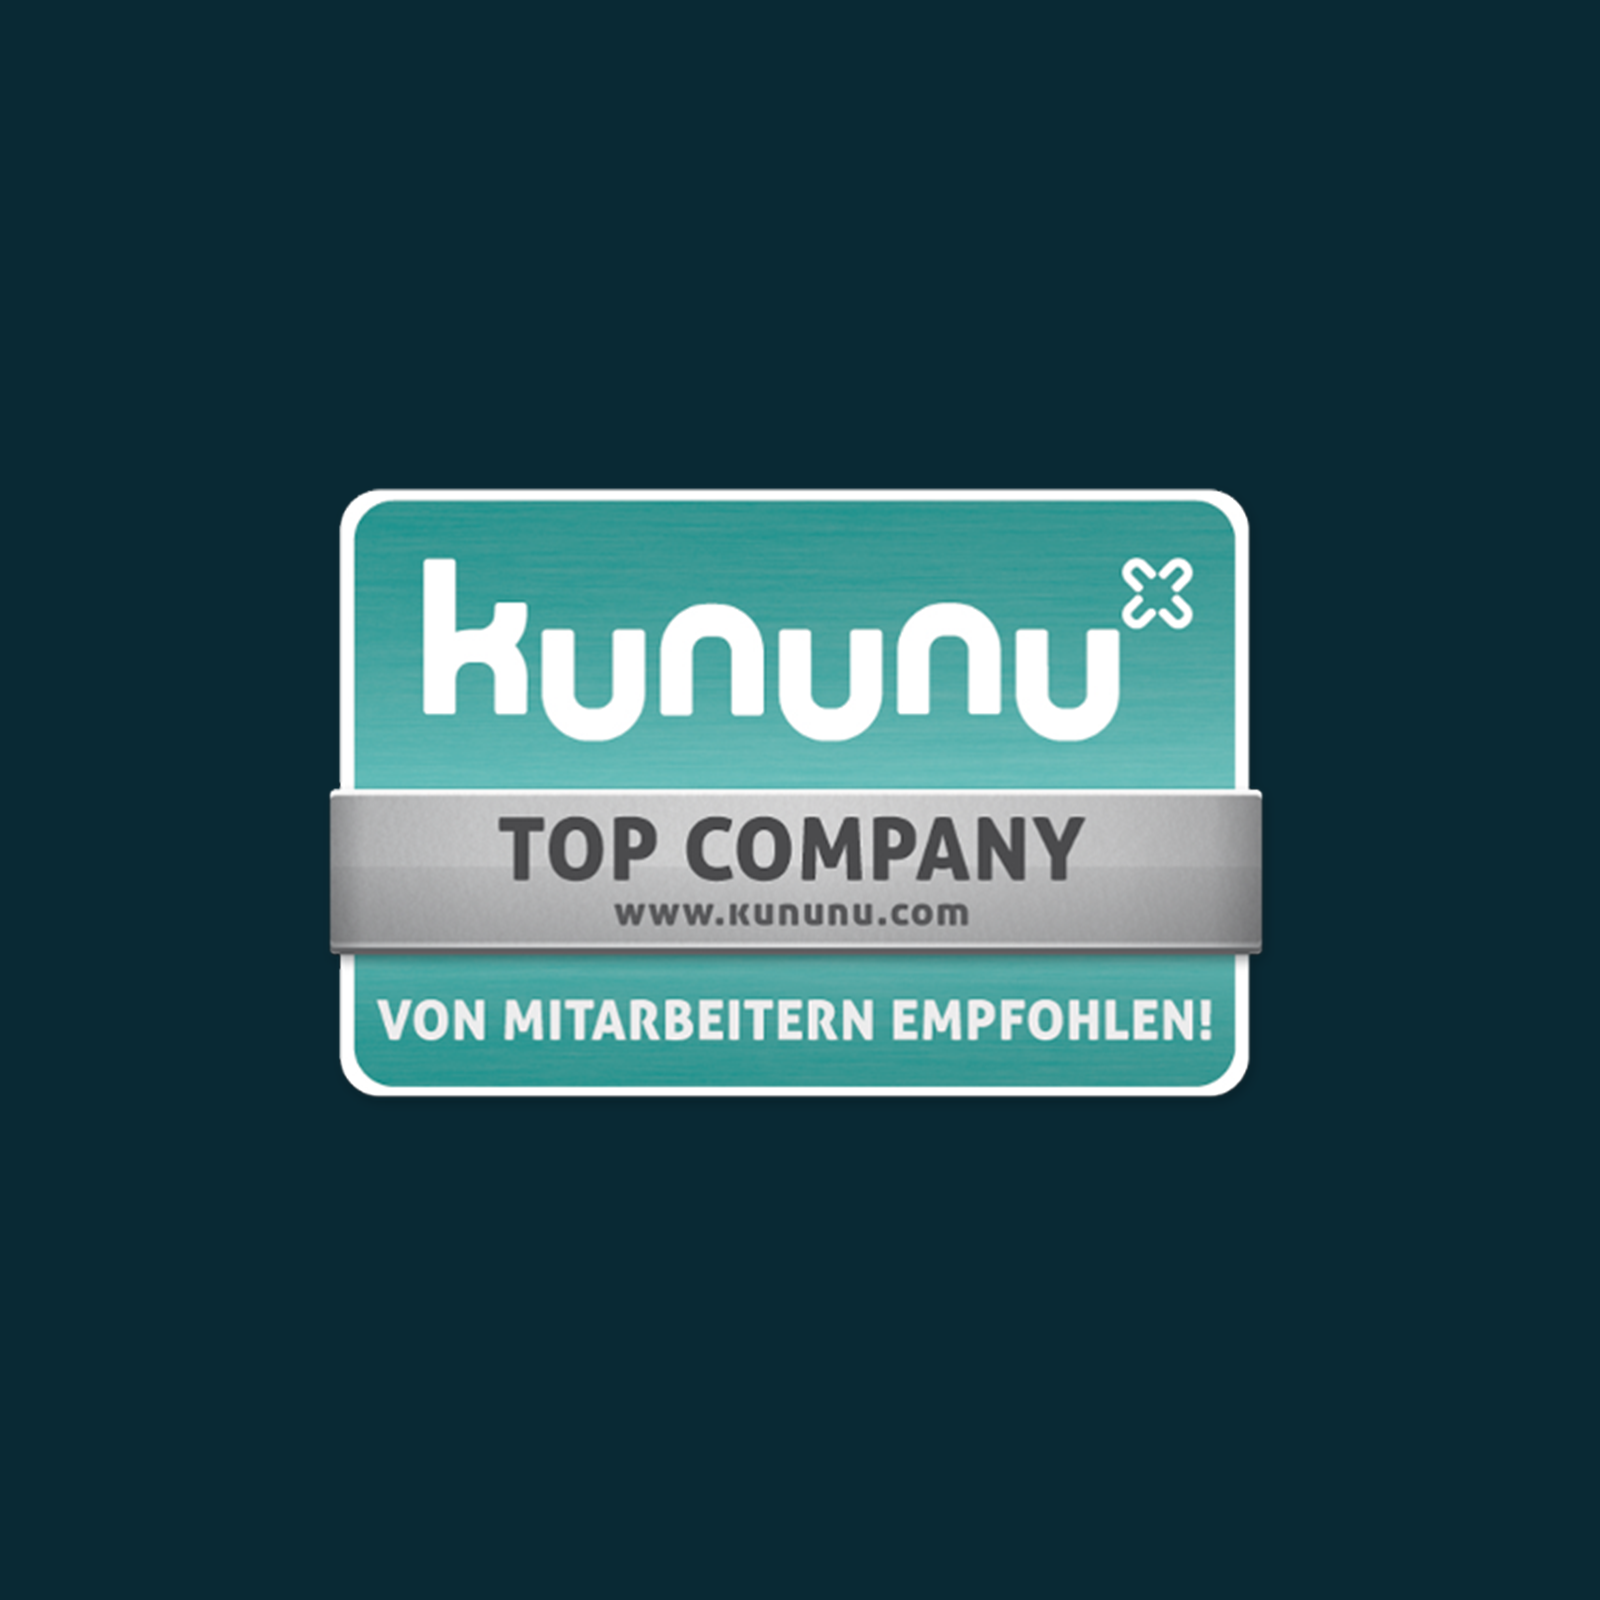 Digital Marketing Agentur ROB NICOLAS ist kununu Top Company